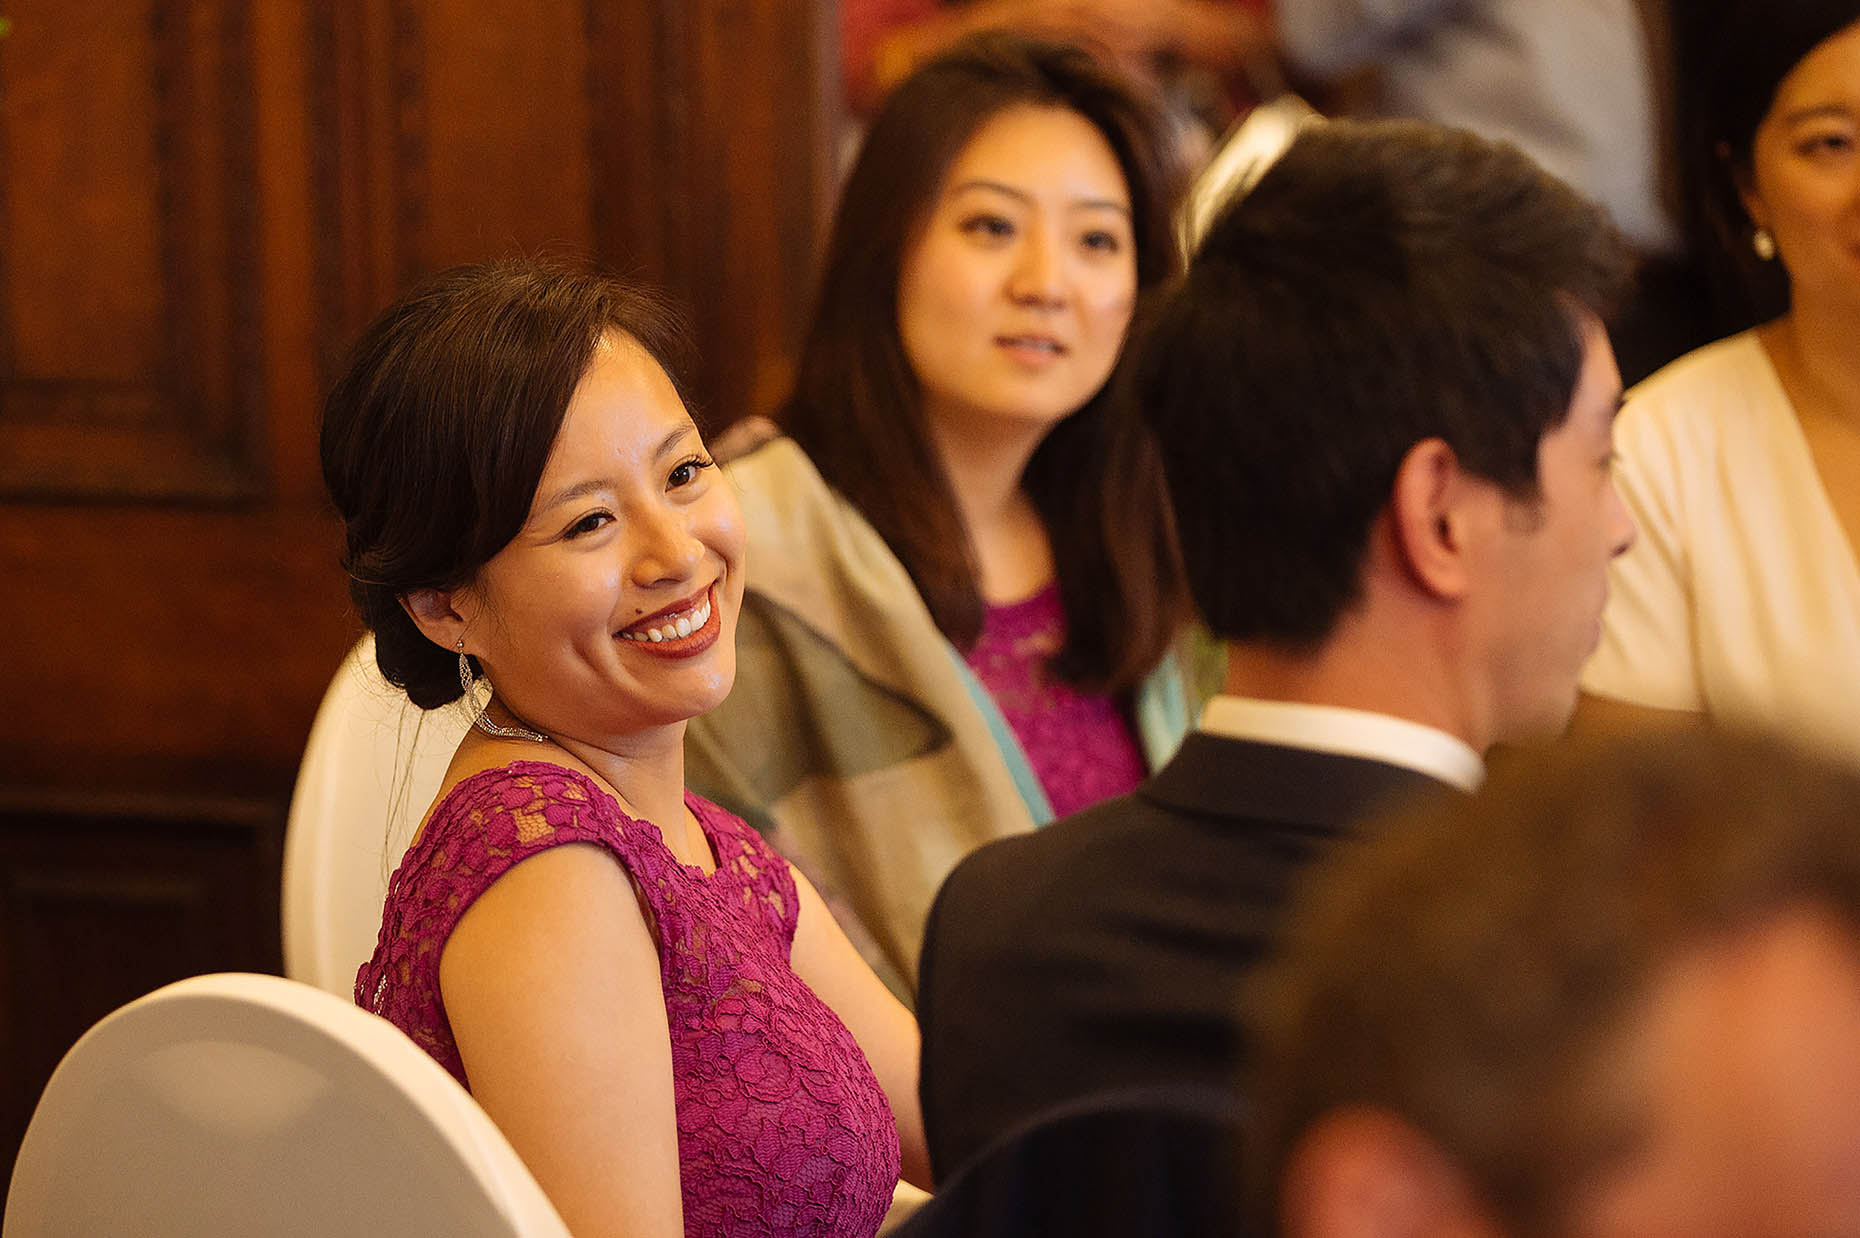 chay-reception-beaumanor-hall-leicestershire-wedding-photography-26